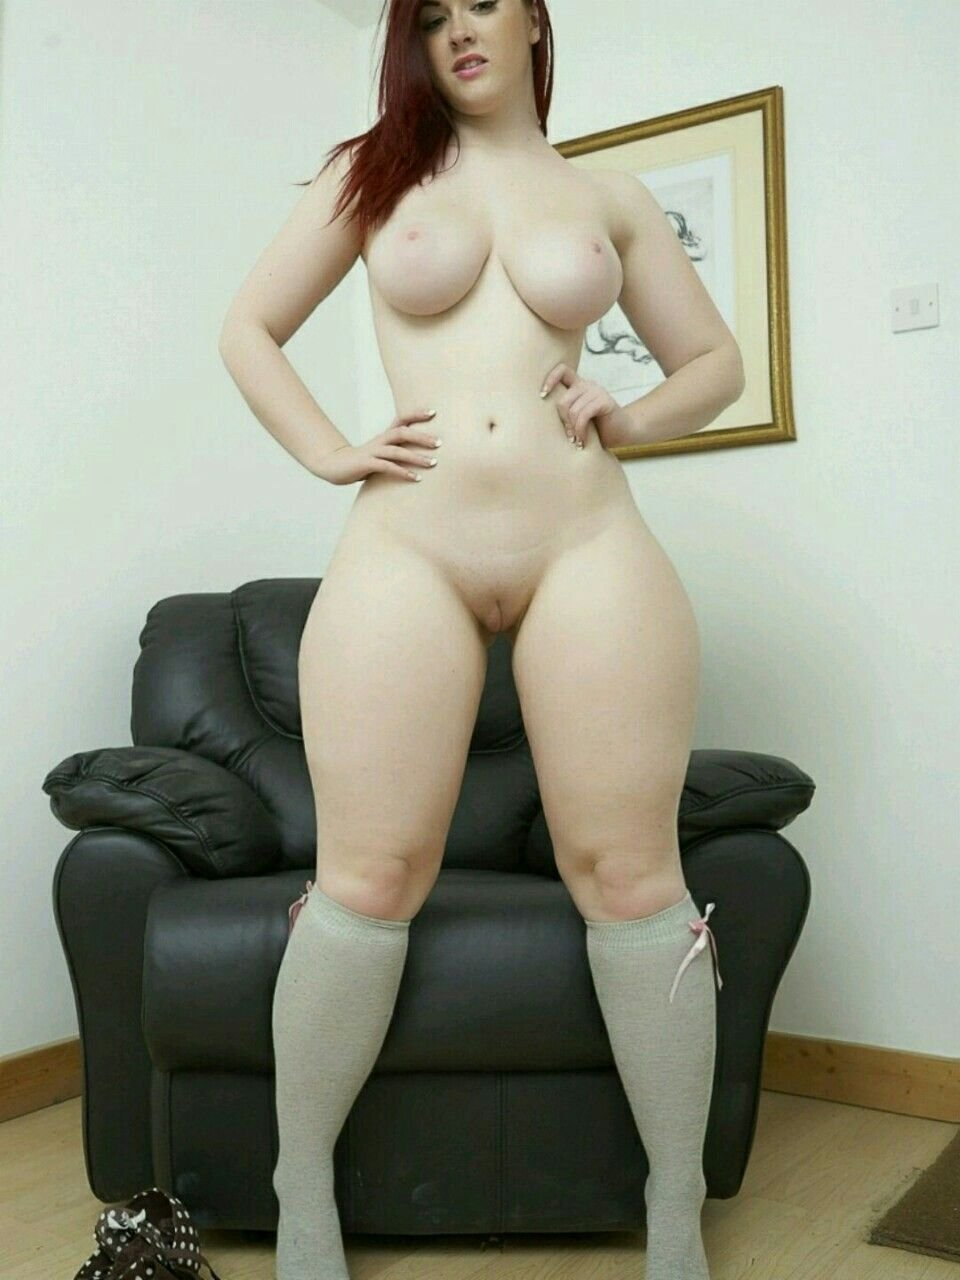 Naked Girl With Thick Thighs